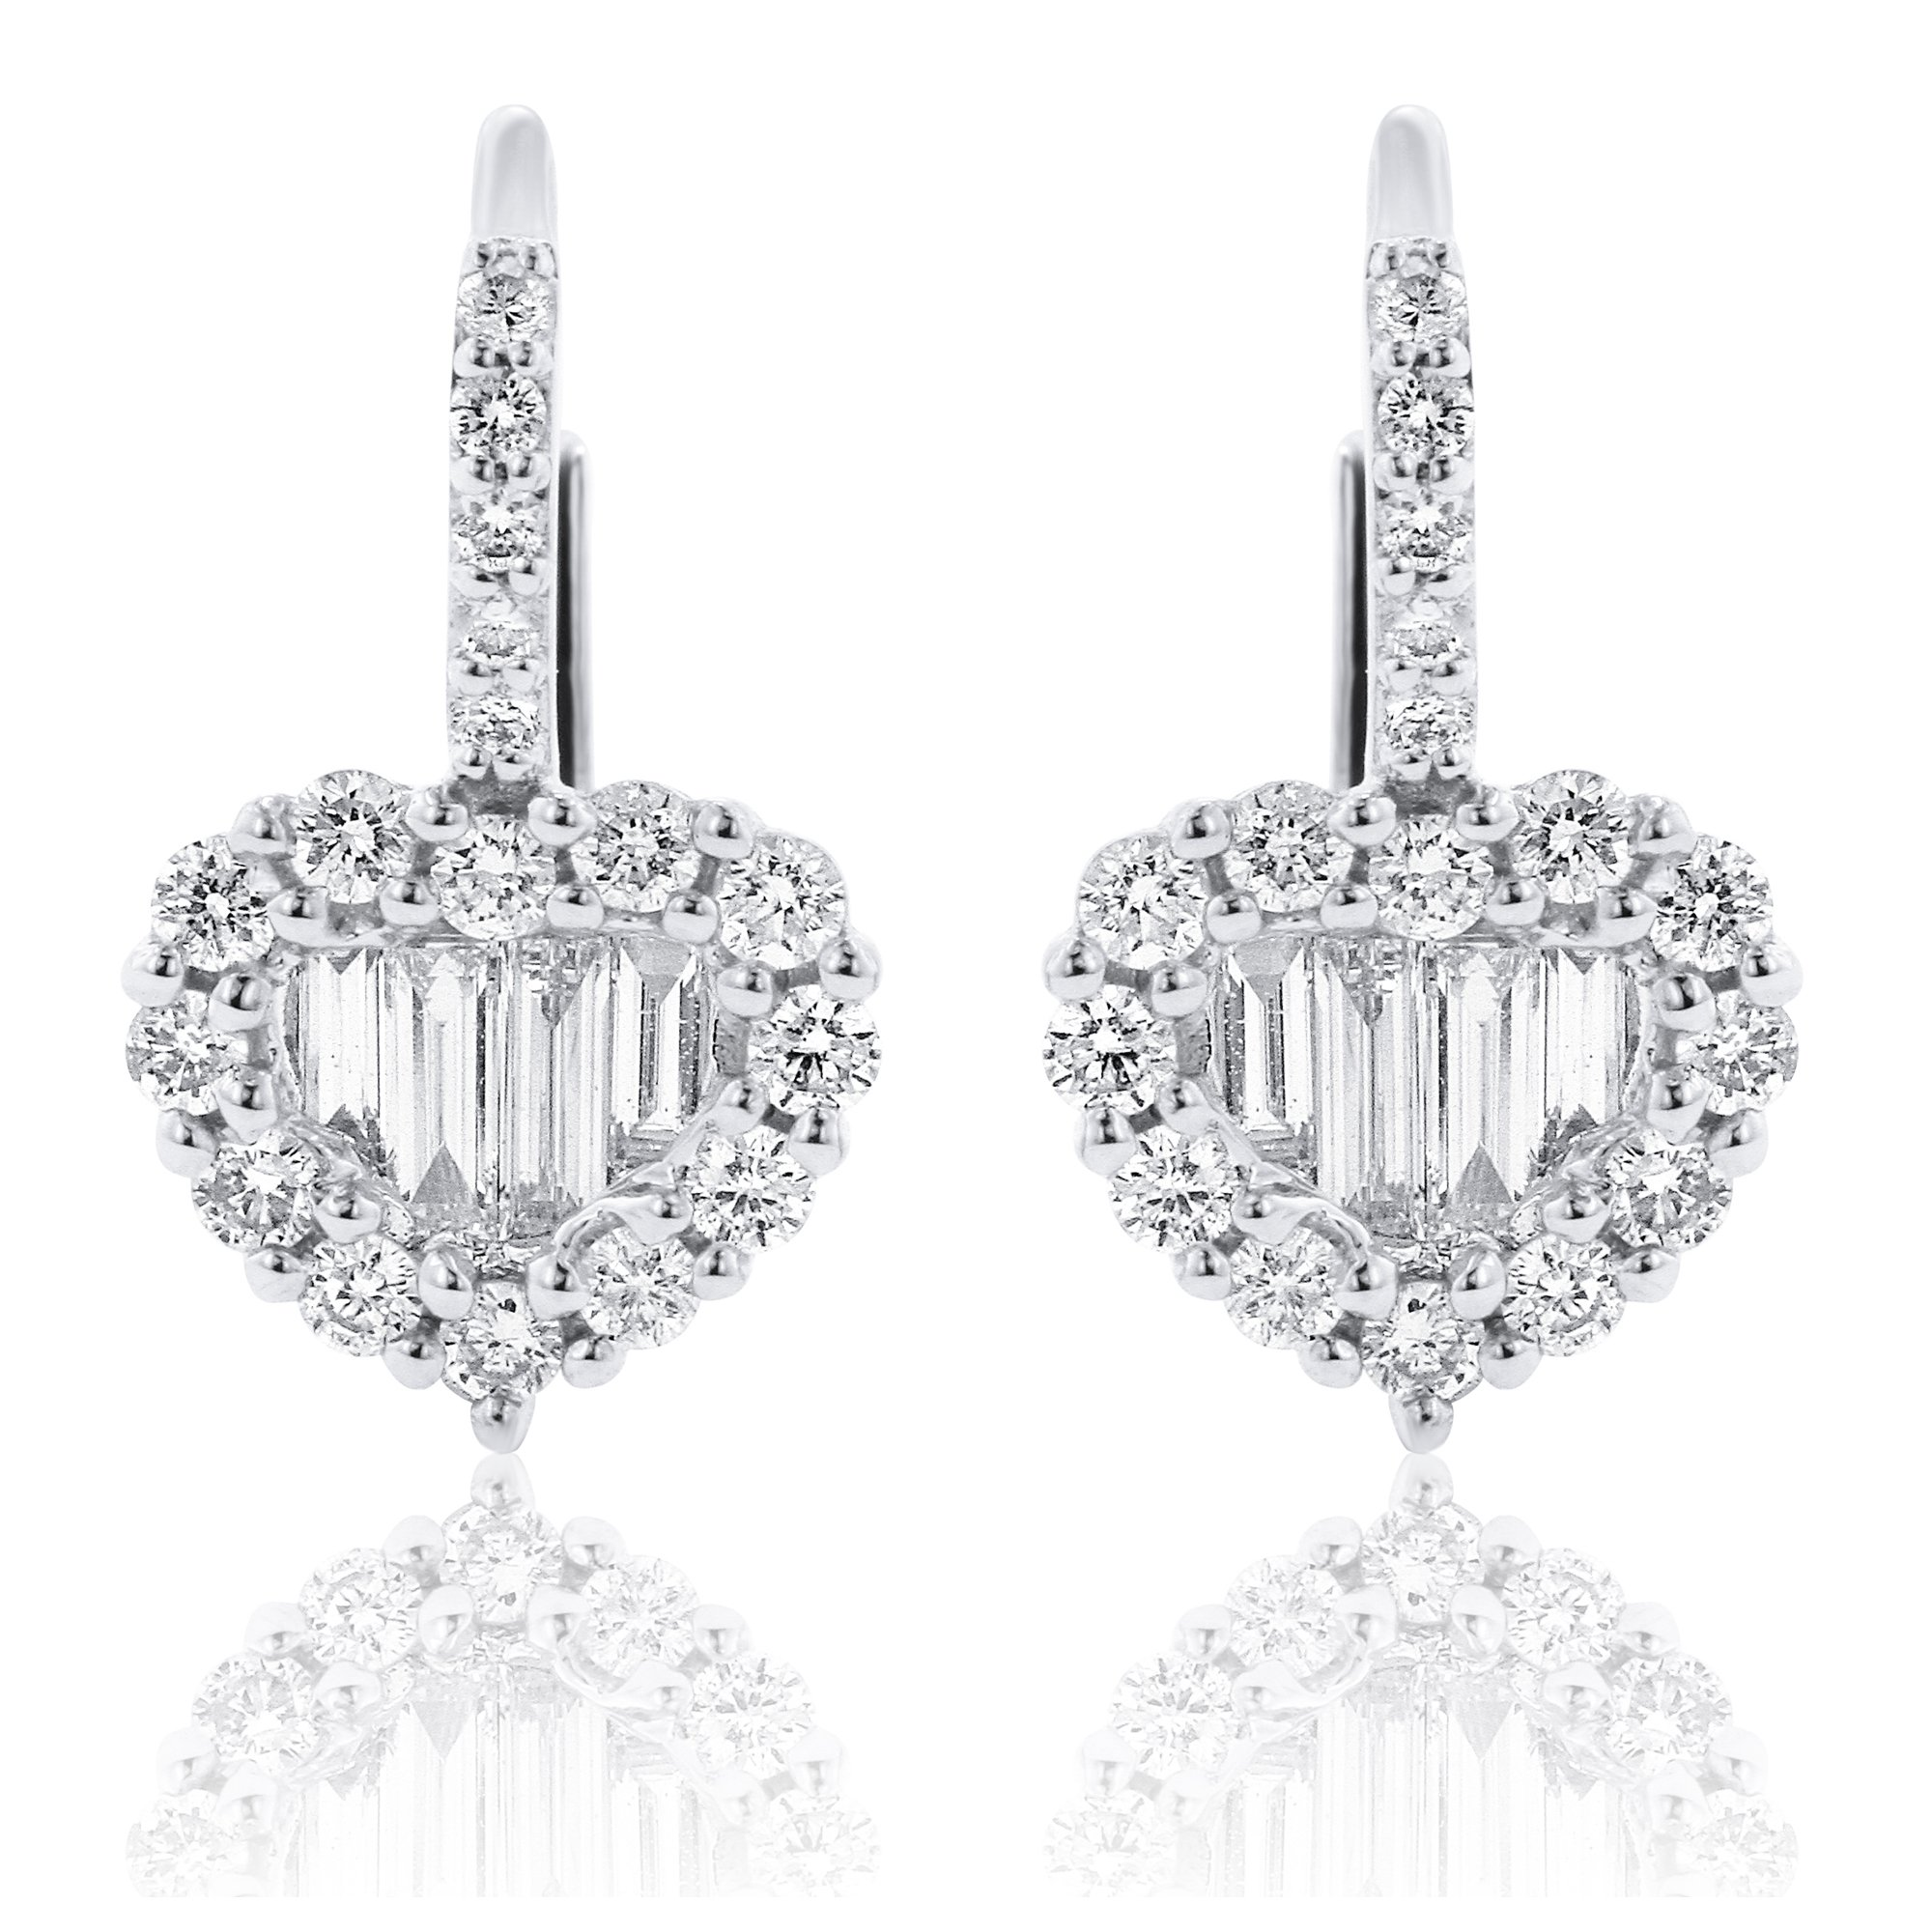 Round And Baguette Diamond Heart Earrings In 18k White Gold M A Jewelers